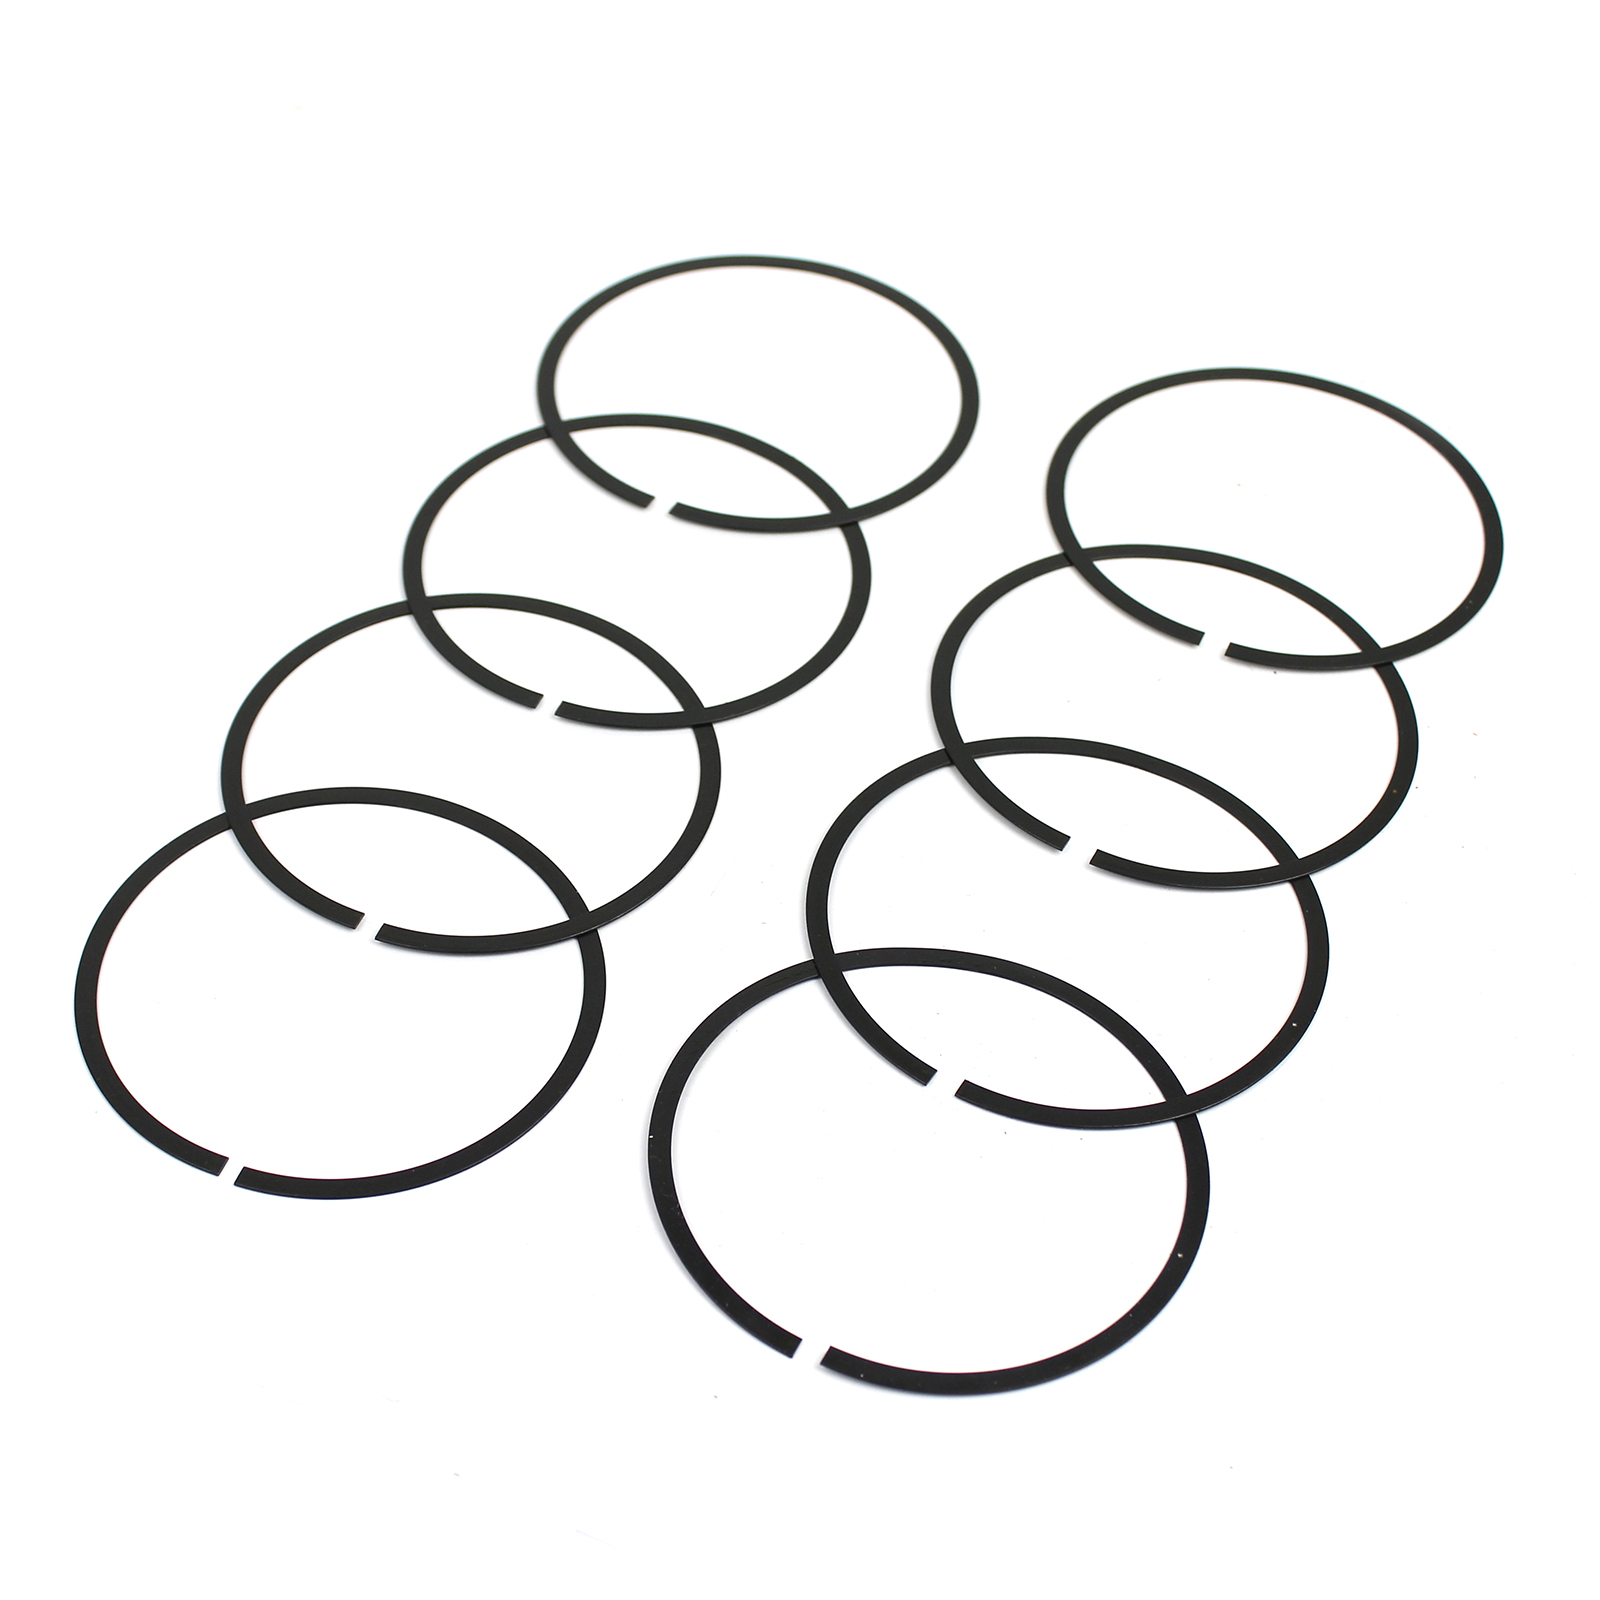 "4.000"" Bore Piston Oil Ring Rail Spacer Support (0.030"" Thick) Set of 8"